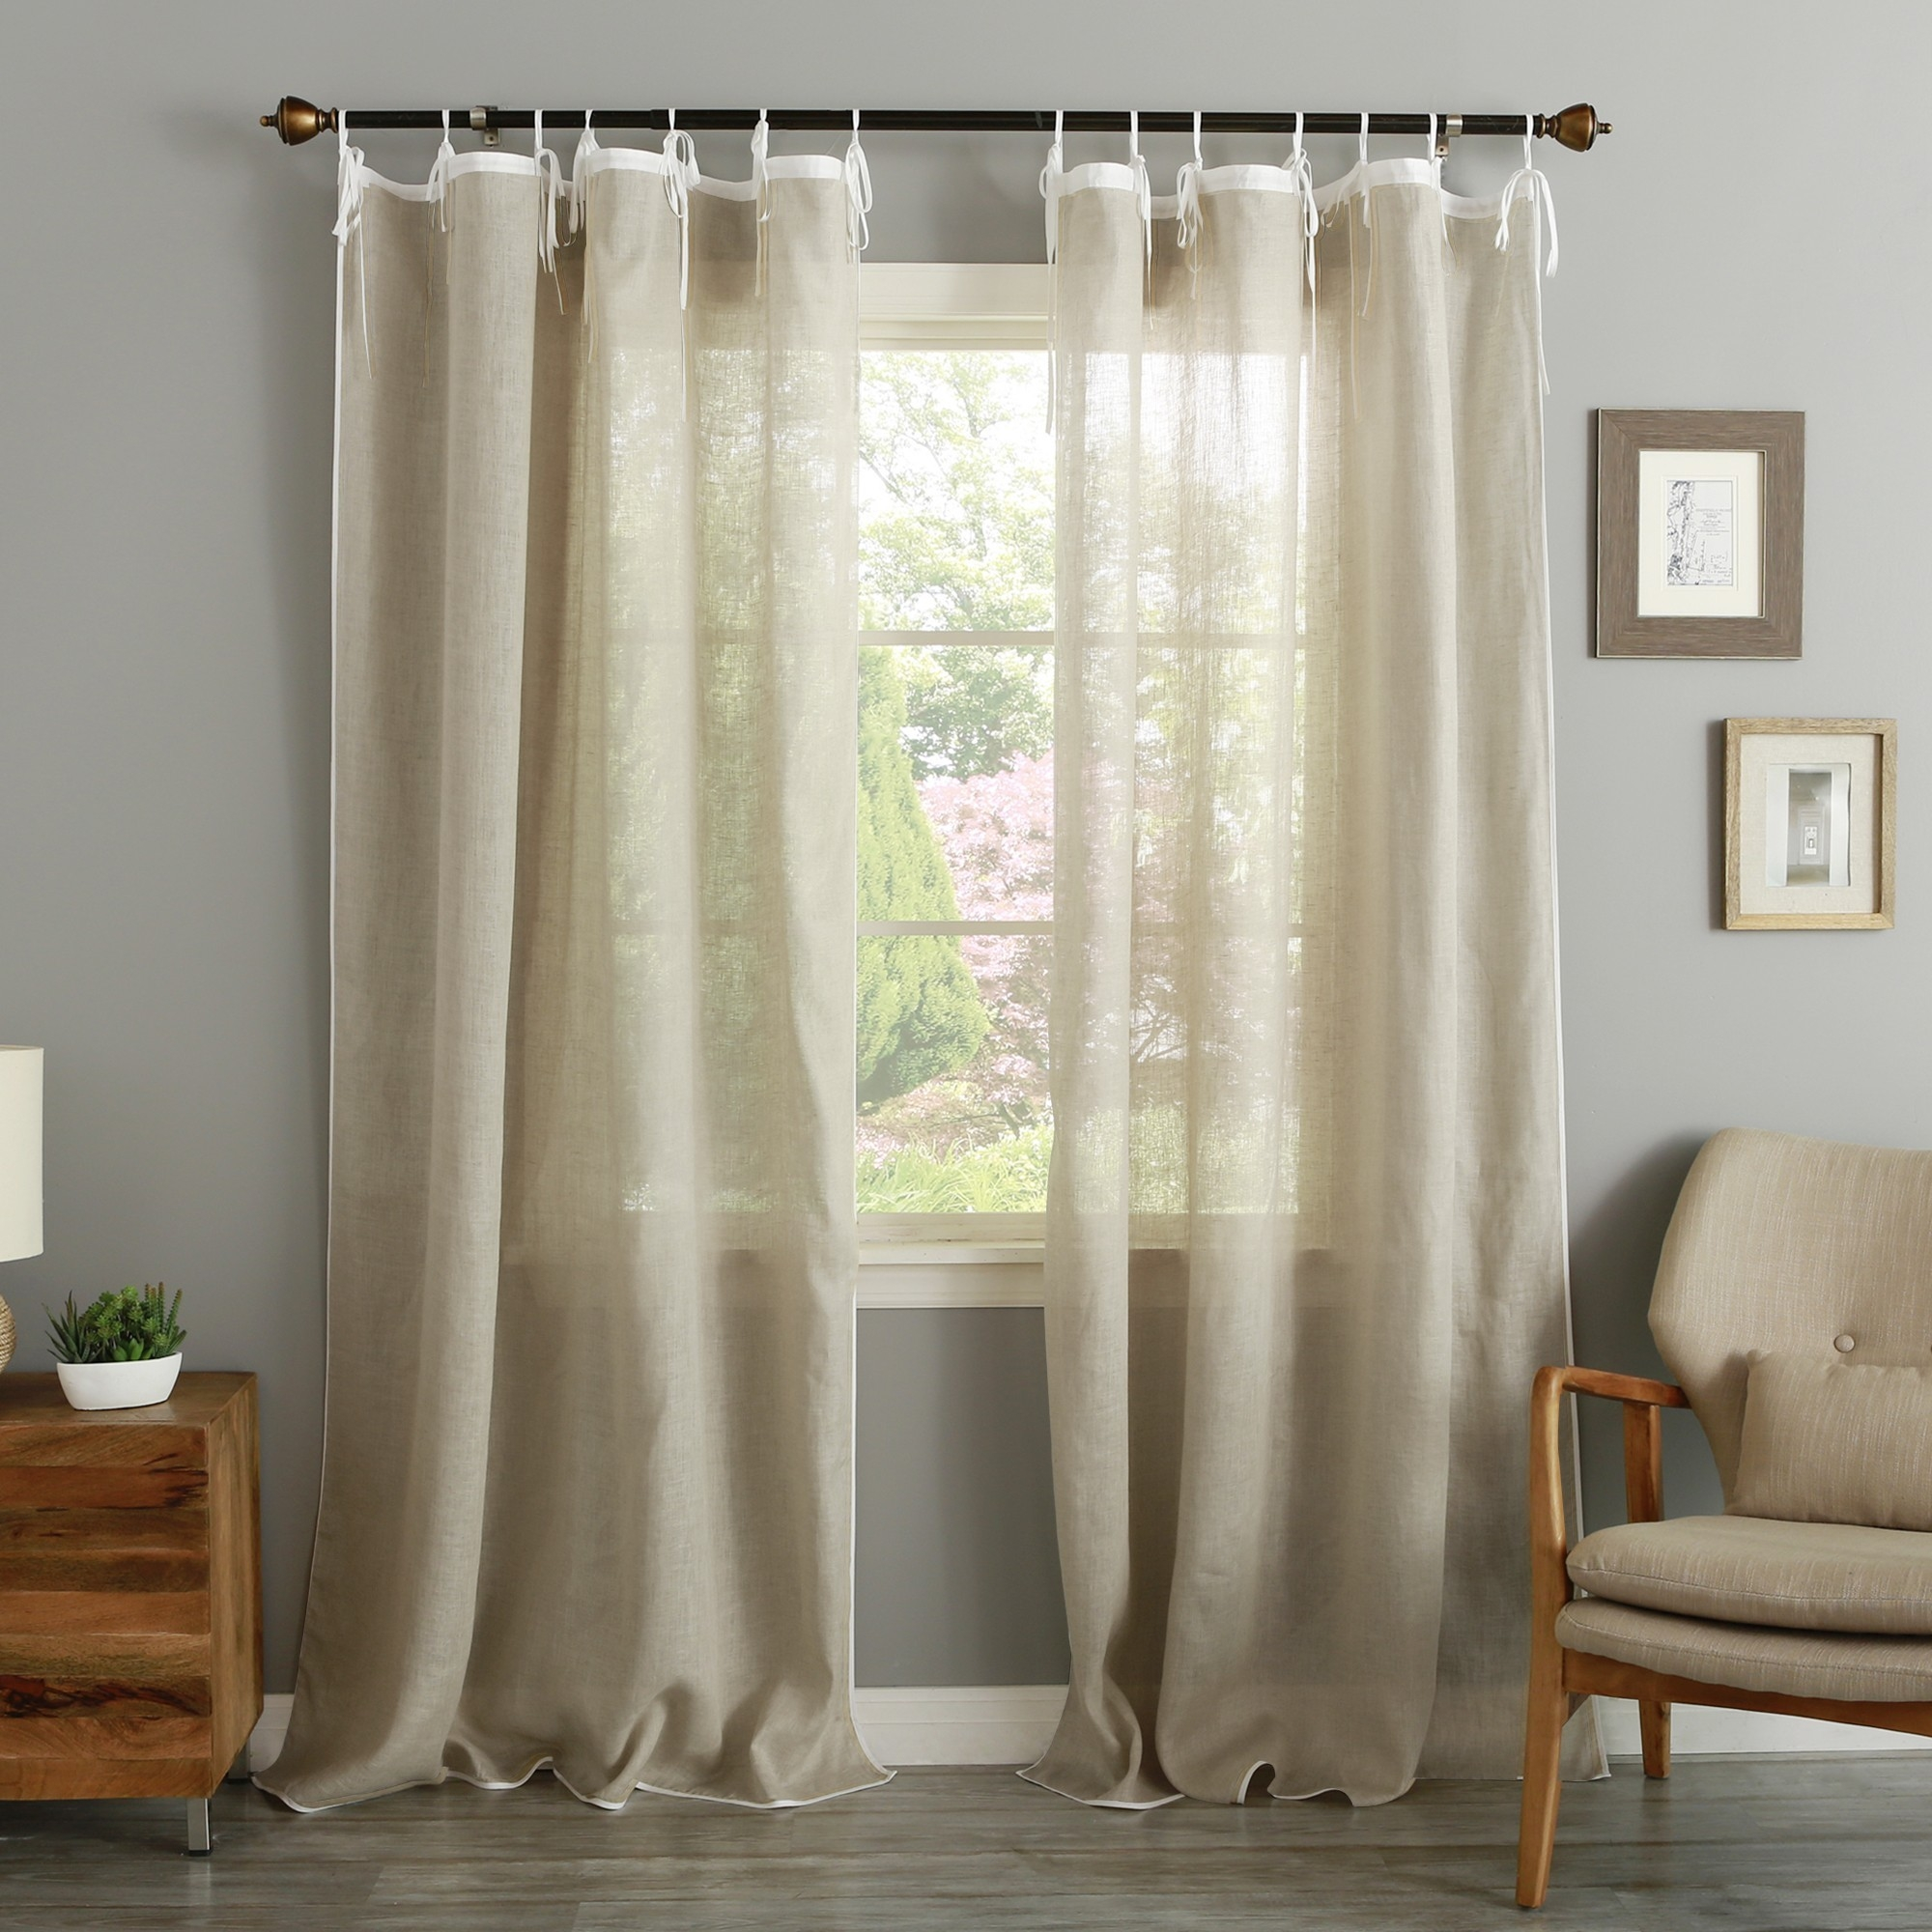 Carefree Linen Grommet Curtain Panels Tags Linen Curtains Throughout Linen Grommet Curtains (Image 4 of 25)